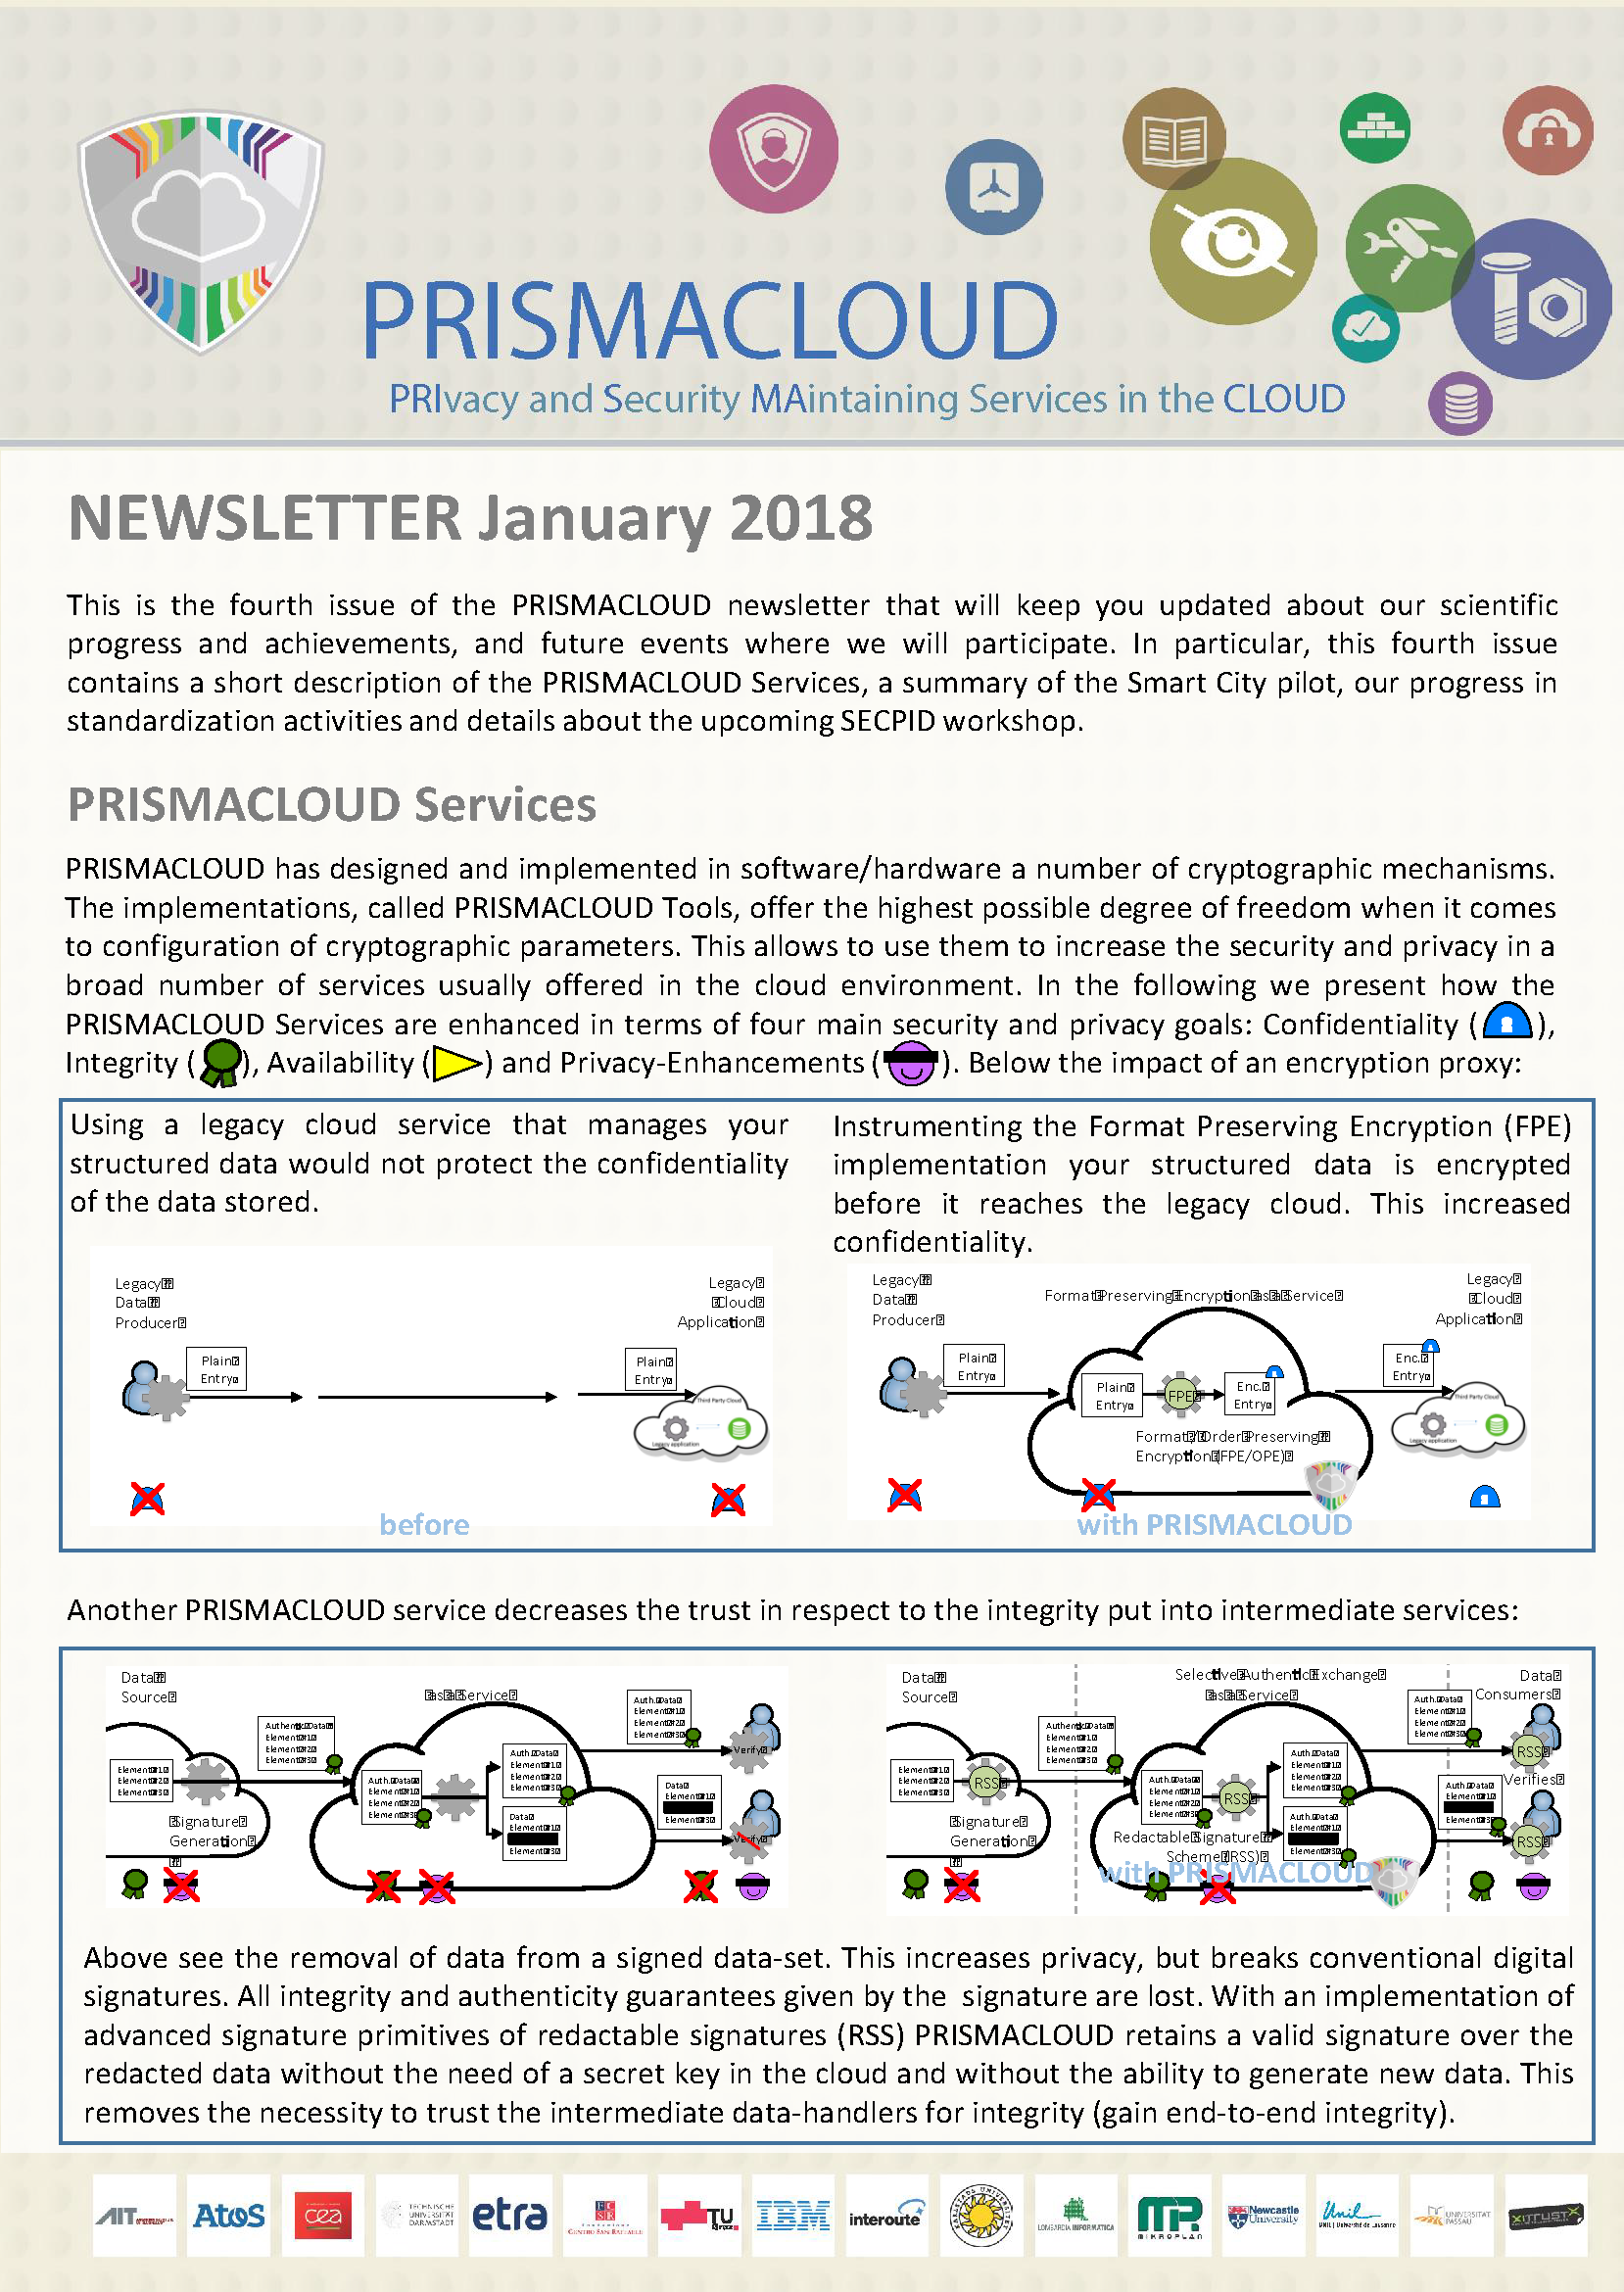 4th PRISMACLOUD Newsletter - January 2018